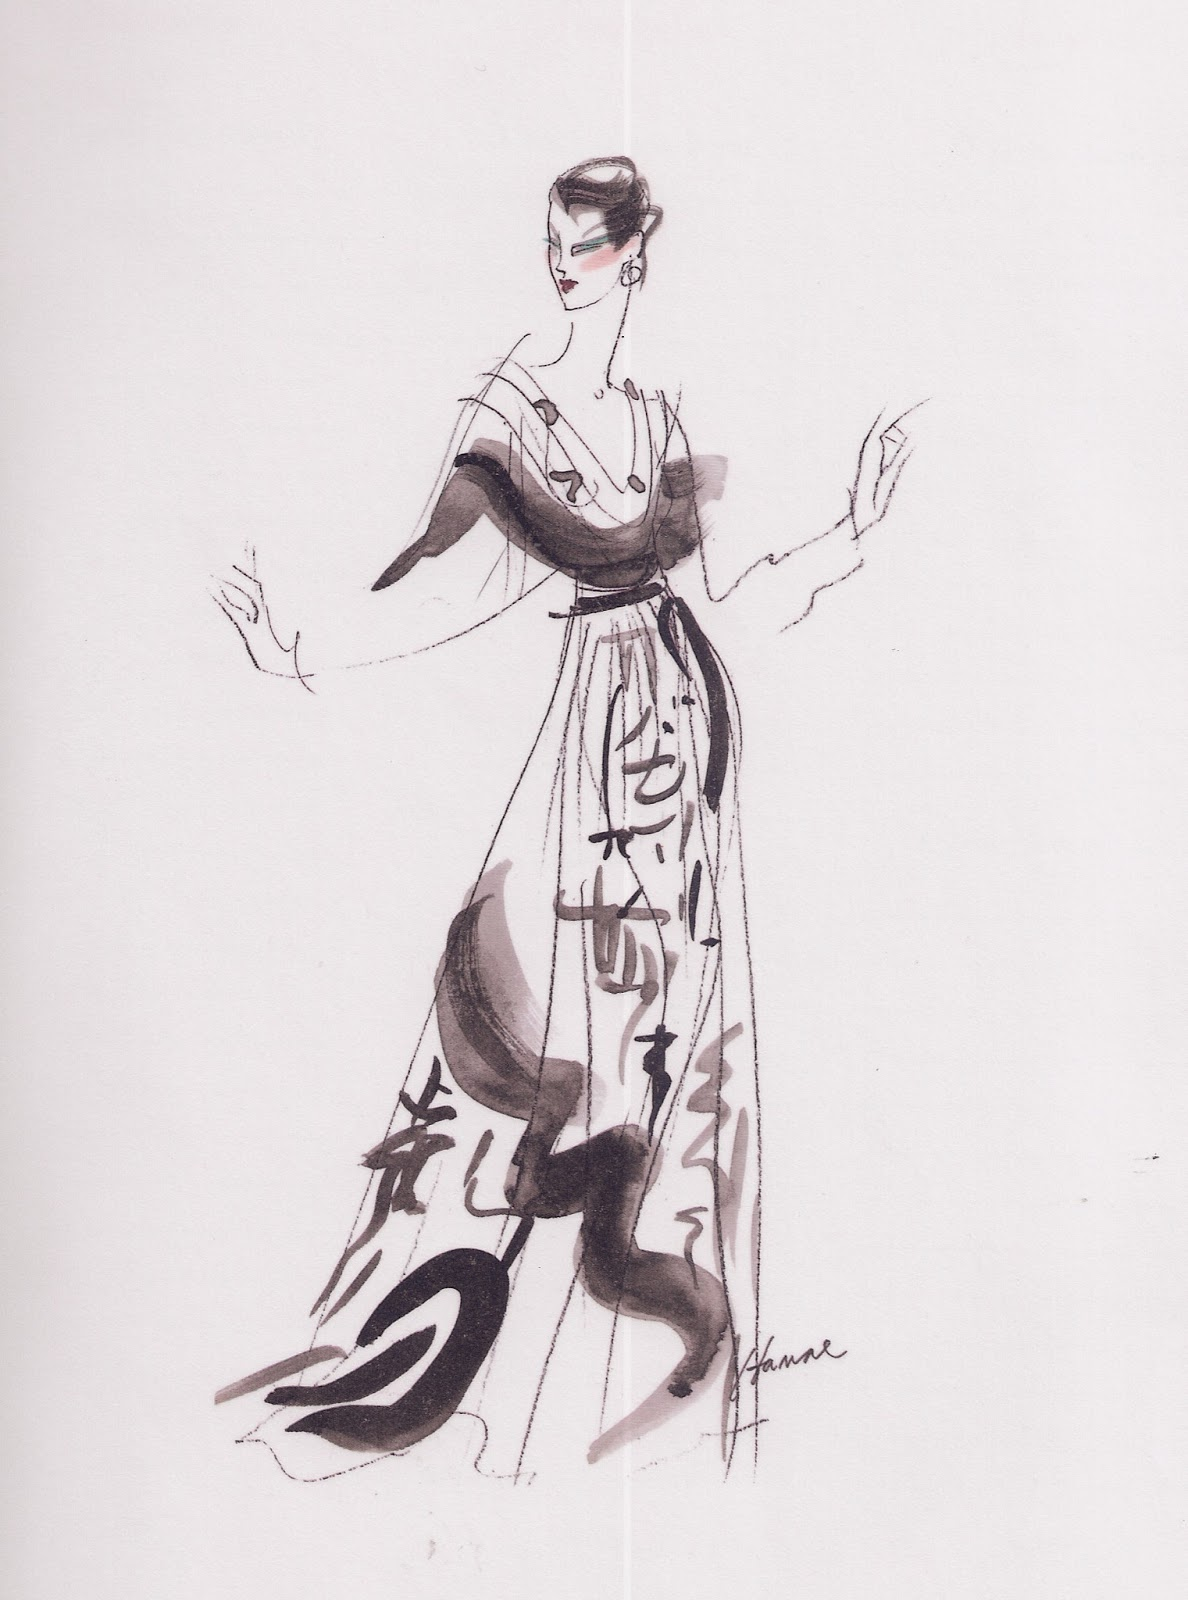 According to braswell fashion illustrations geoffrey Fashion designer geoffrey